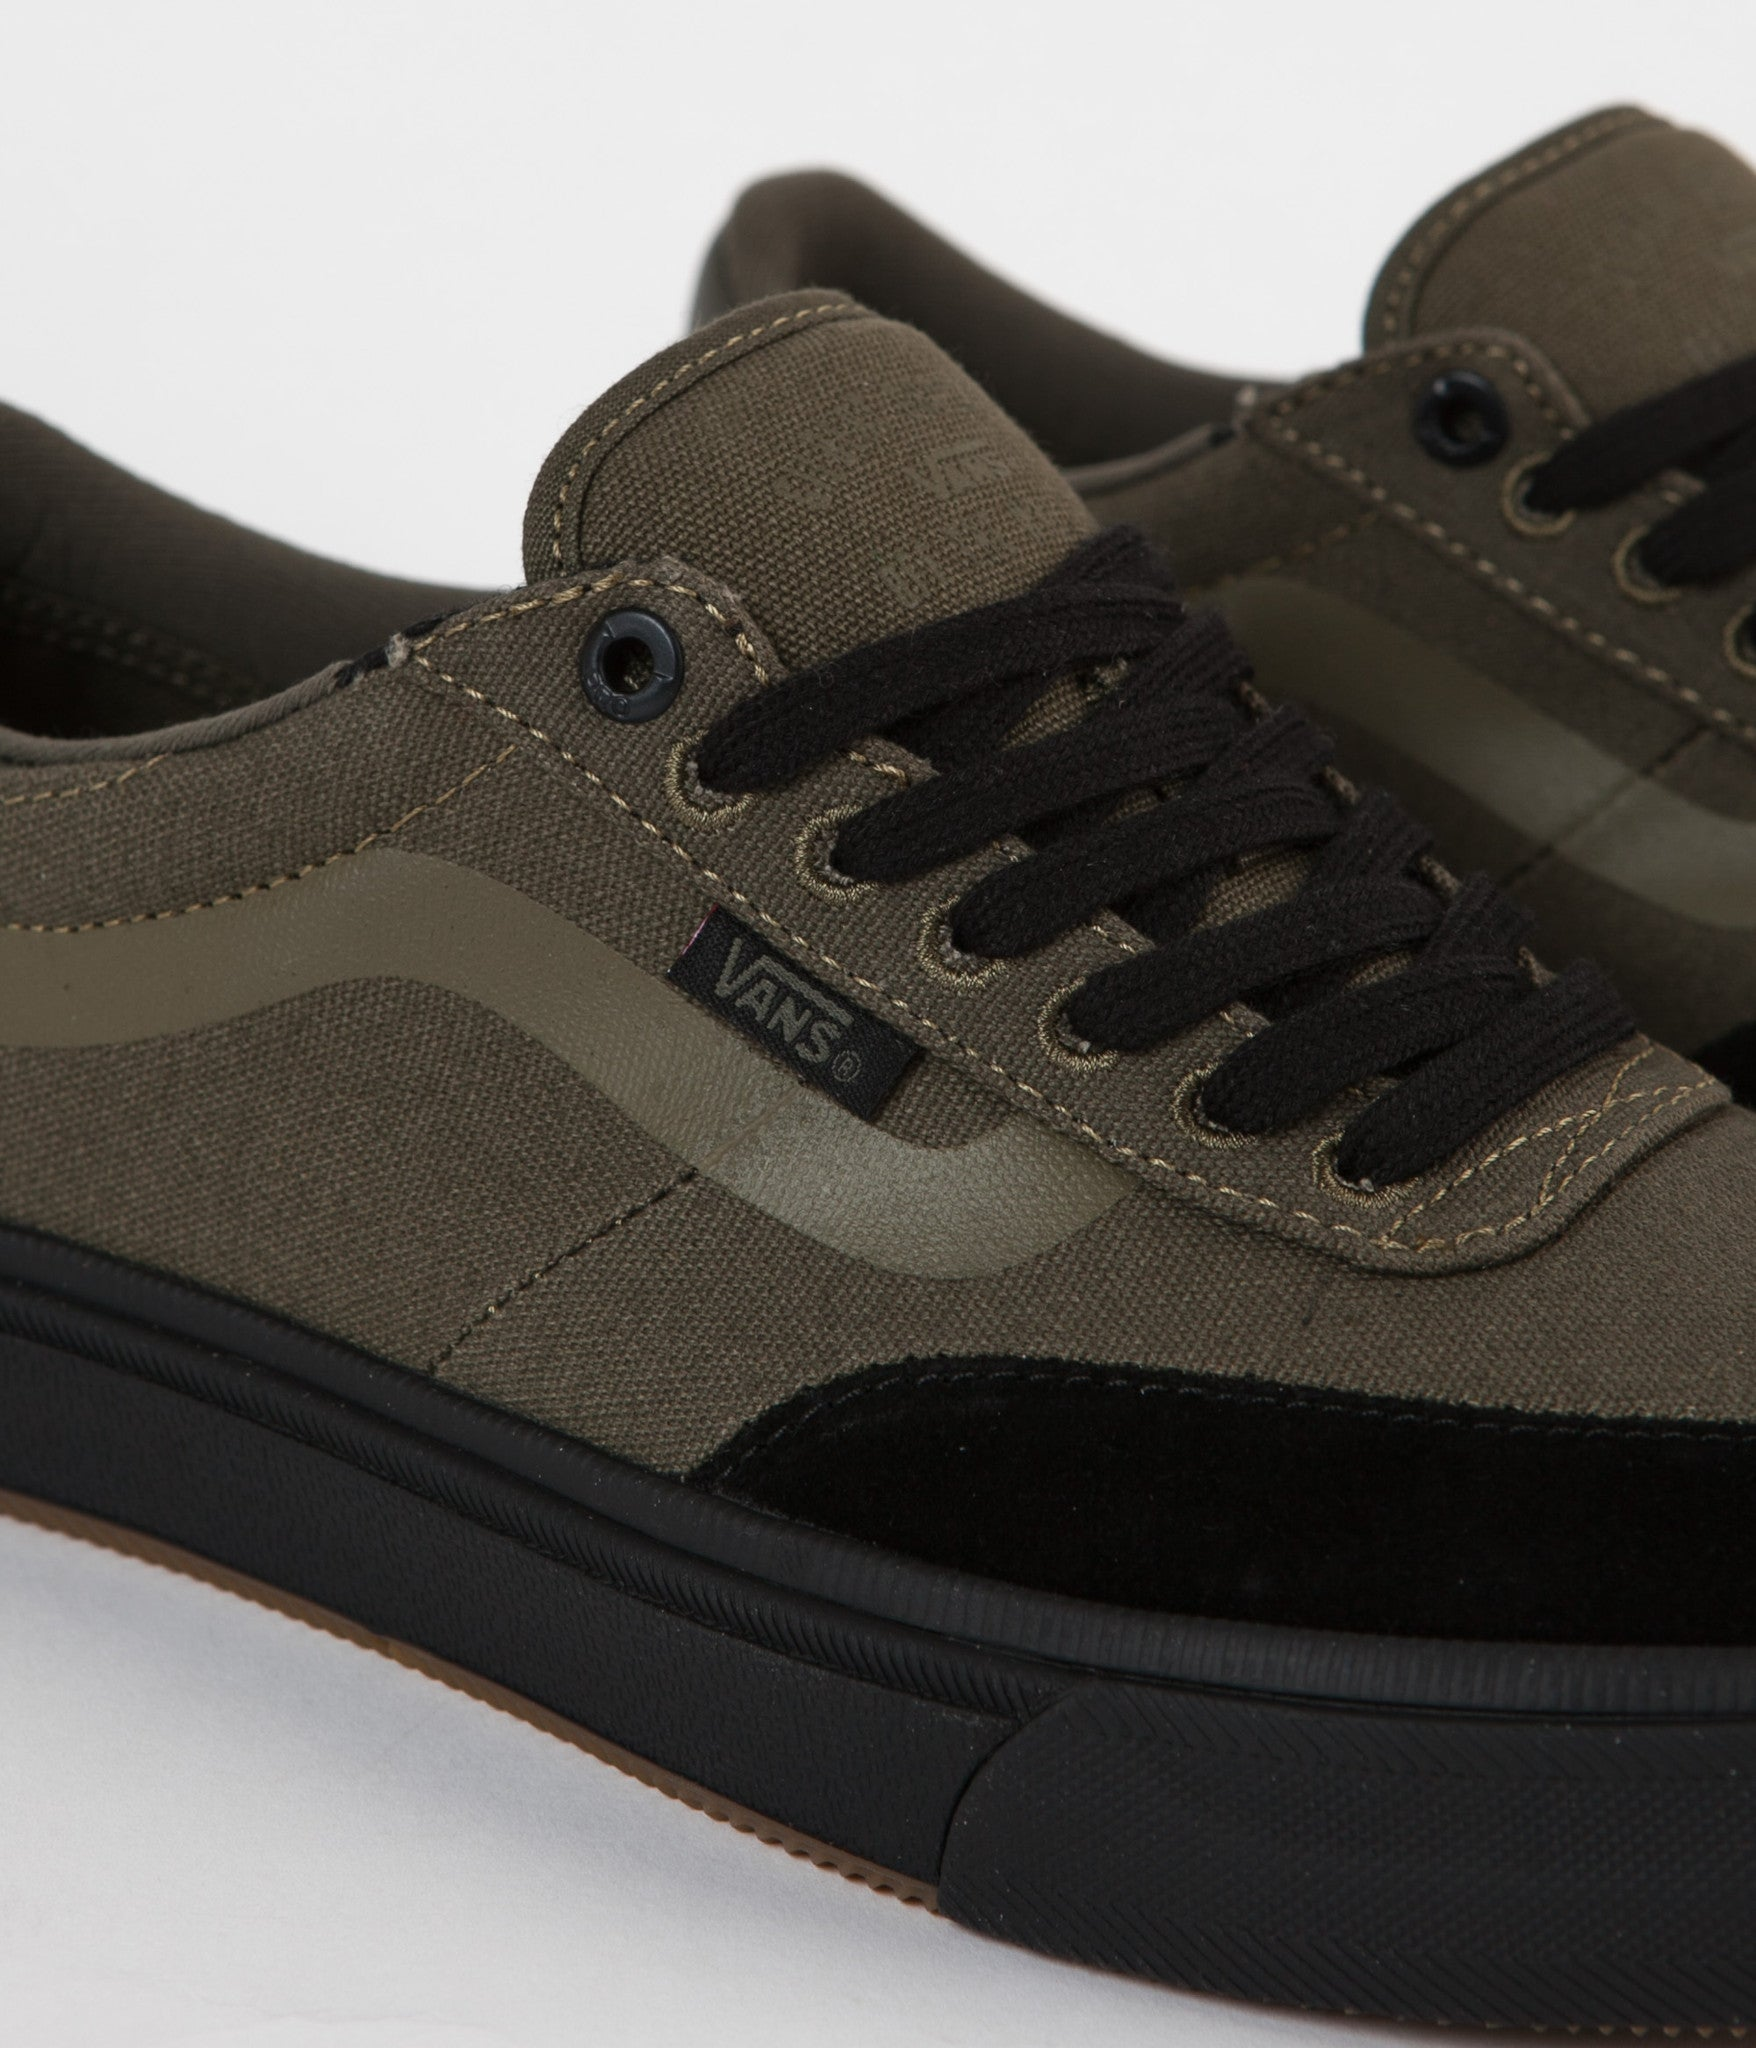 028c5893c0d ... Vans Gilbert Crockett 2 Pro Shoes - Ivy Green   Black ...